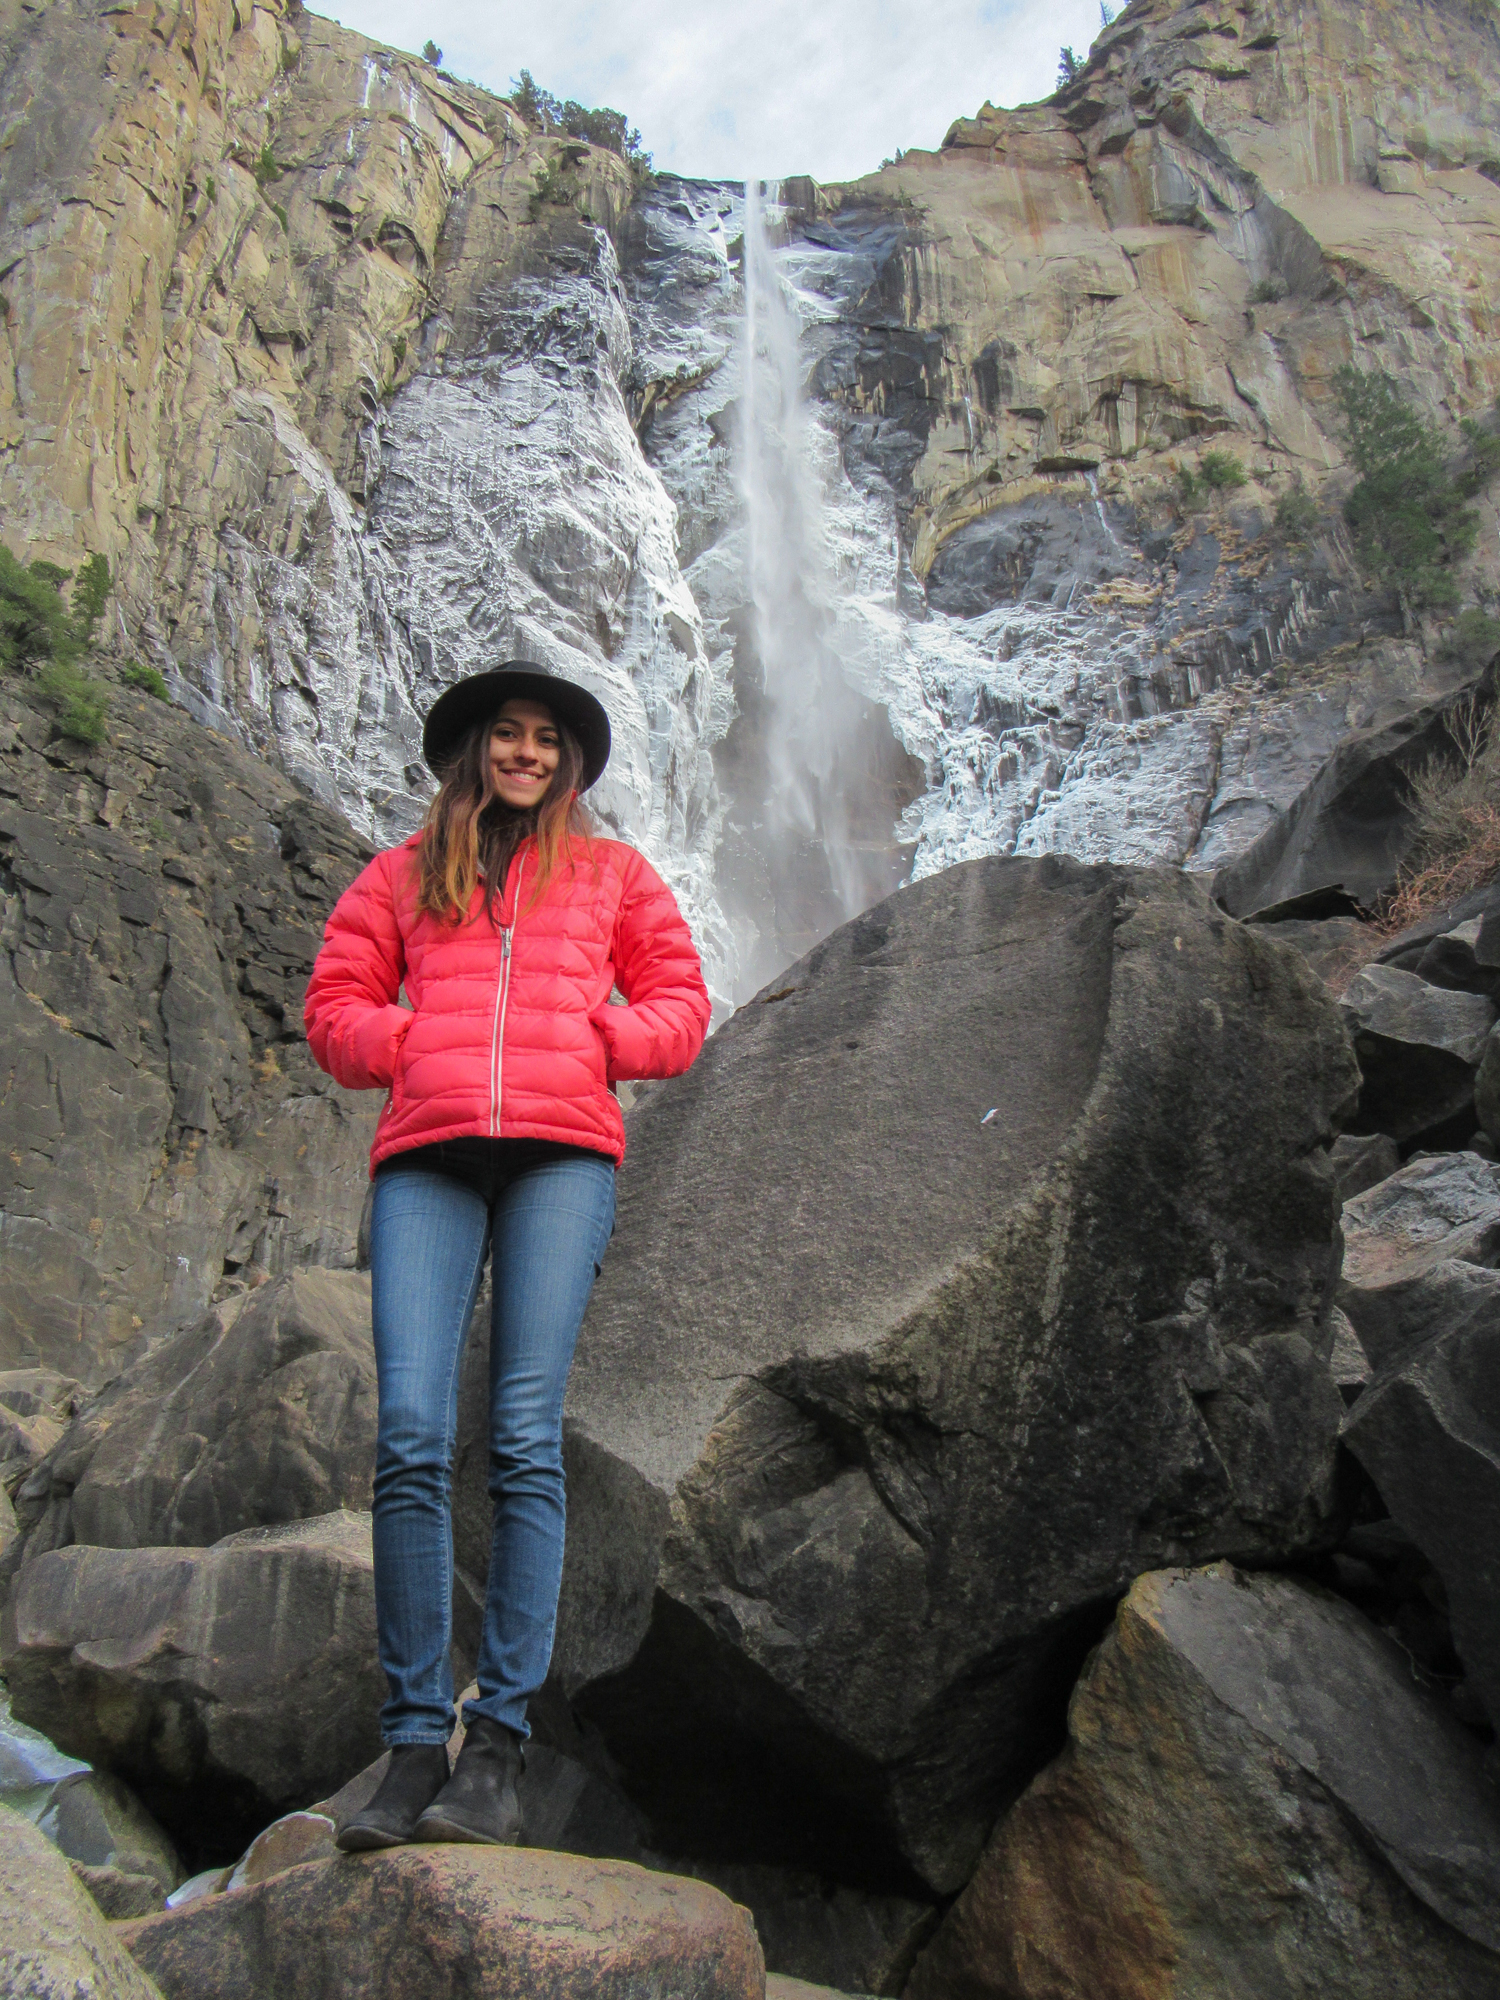 Bridalveil falls trickles over the edge during the winter in Yosemite.